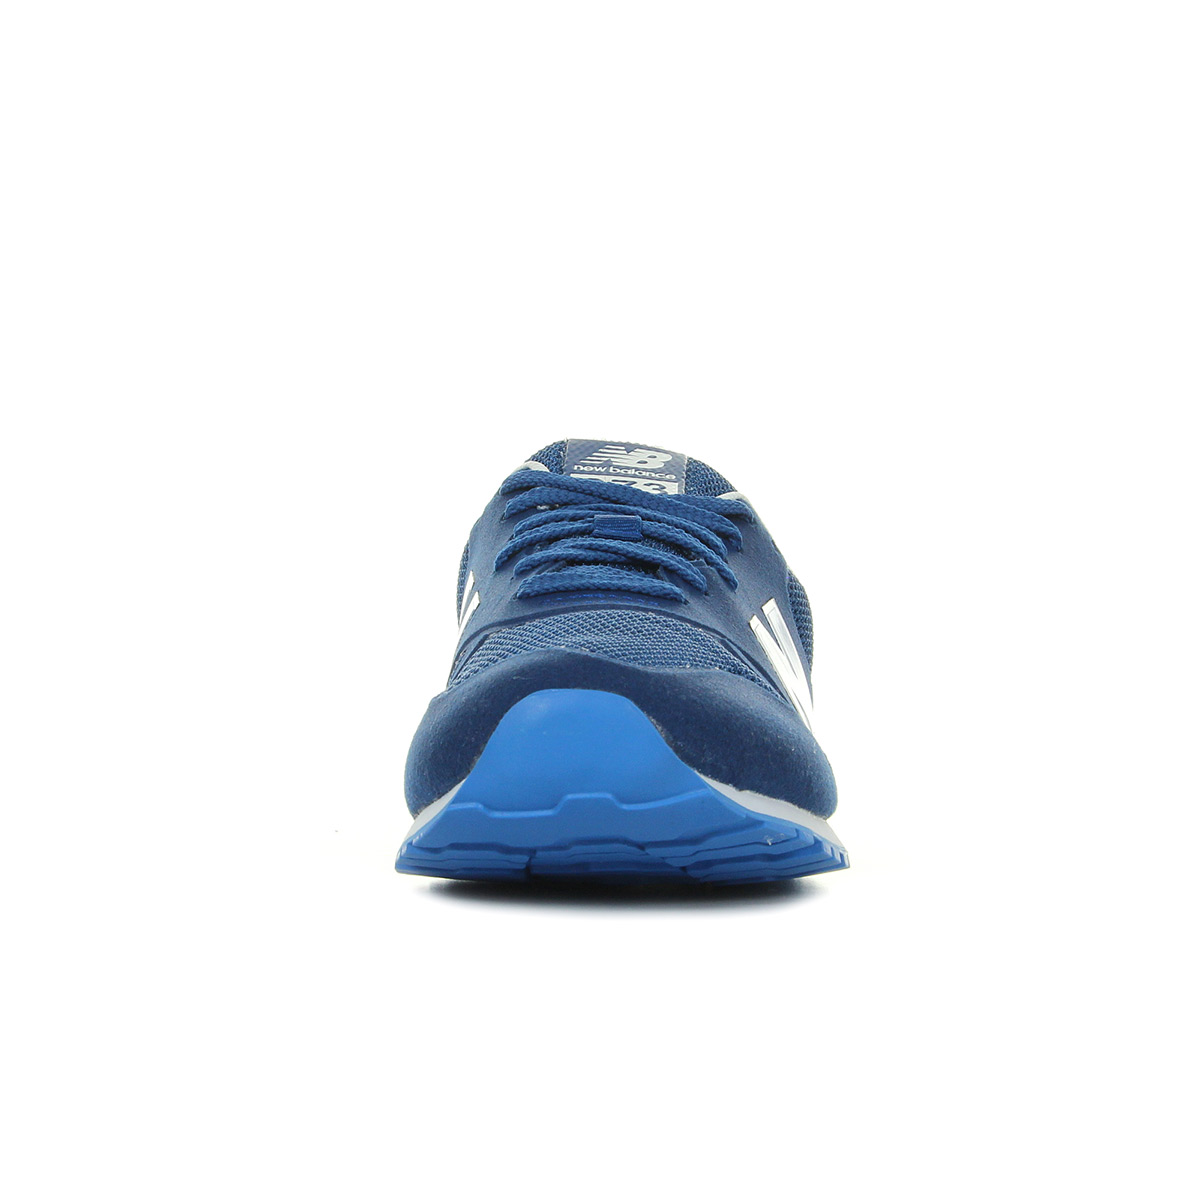 New Balance KD373 BRY KD373BRY, Baskets mode